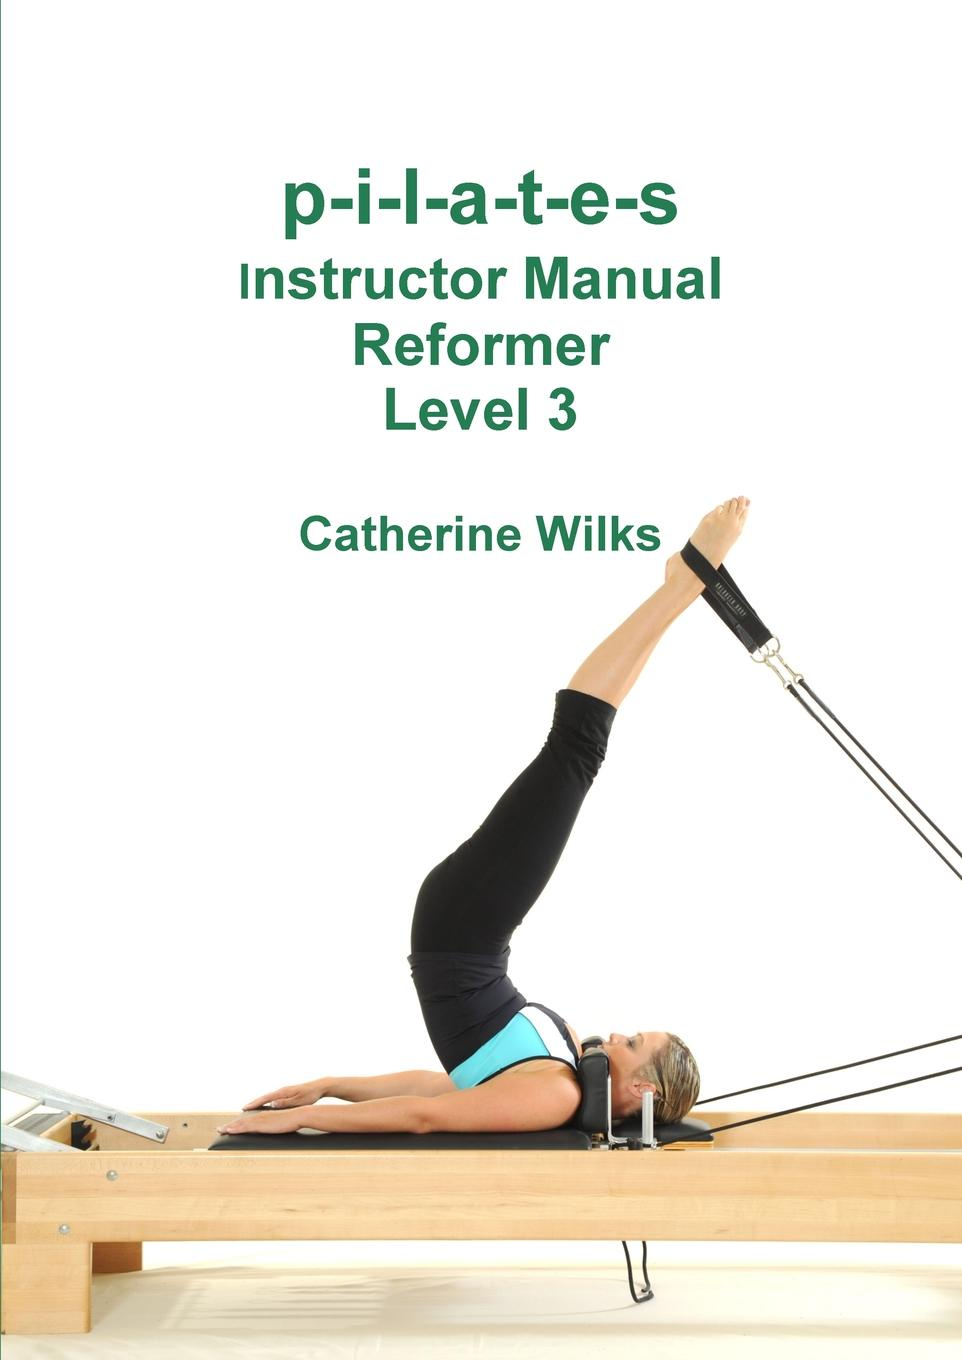 цена на Catherine Wilks p-i-l-a-t-e-s Instructor Manual Reformer Level 3